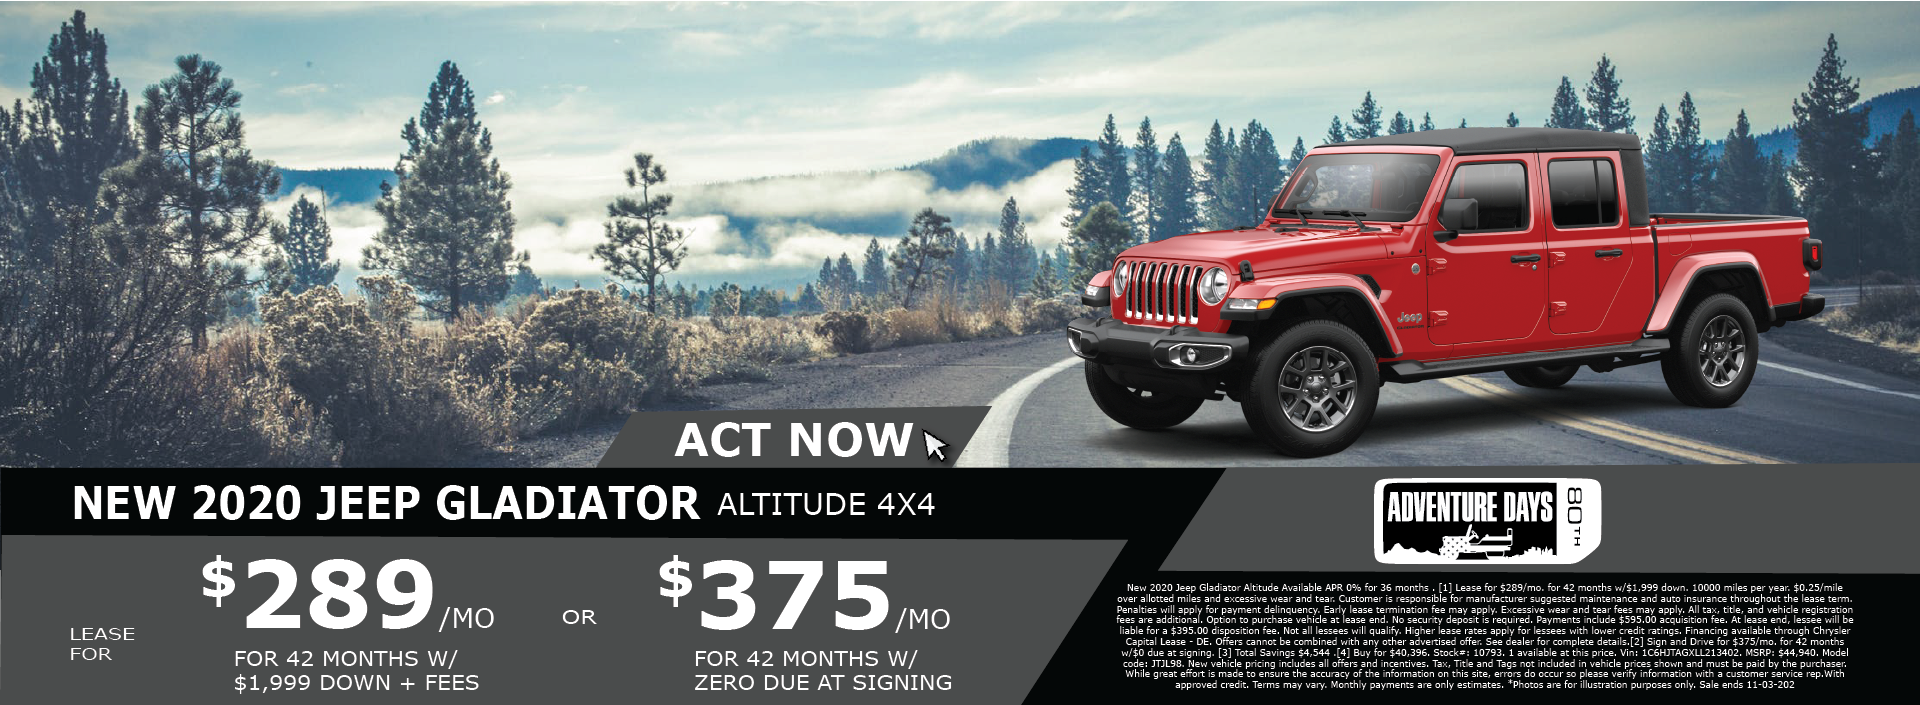 Whitewater – Jeep Gladiator October 2020